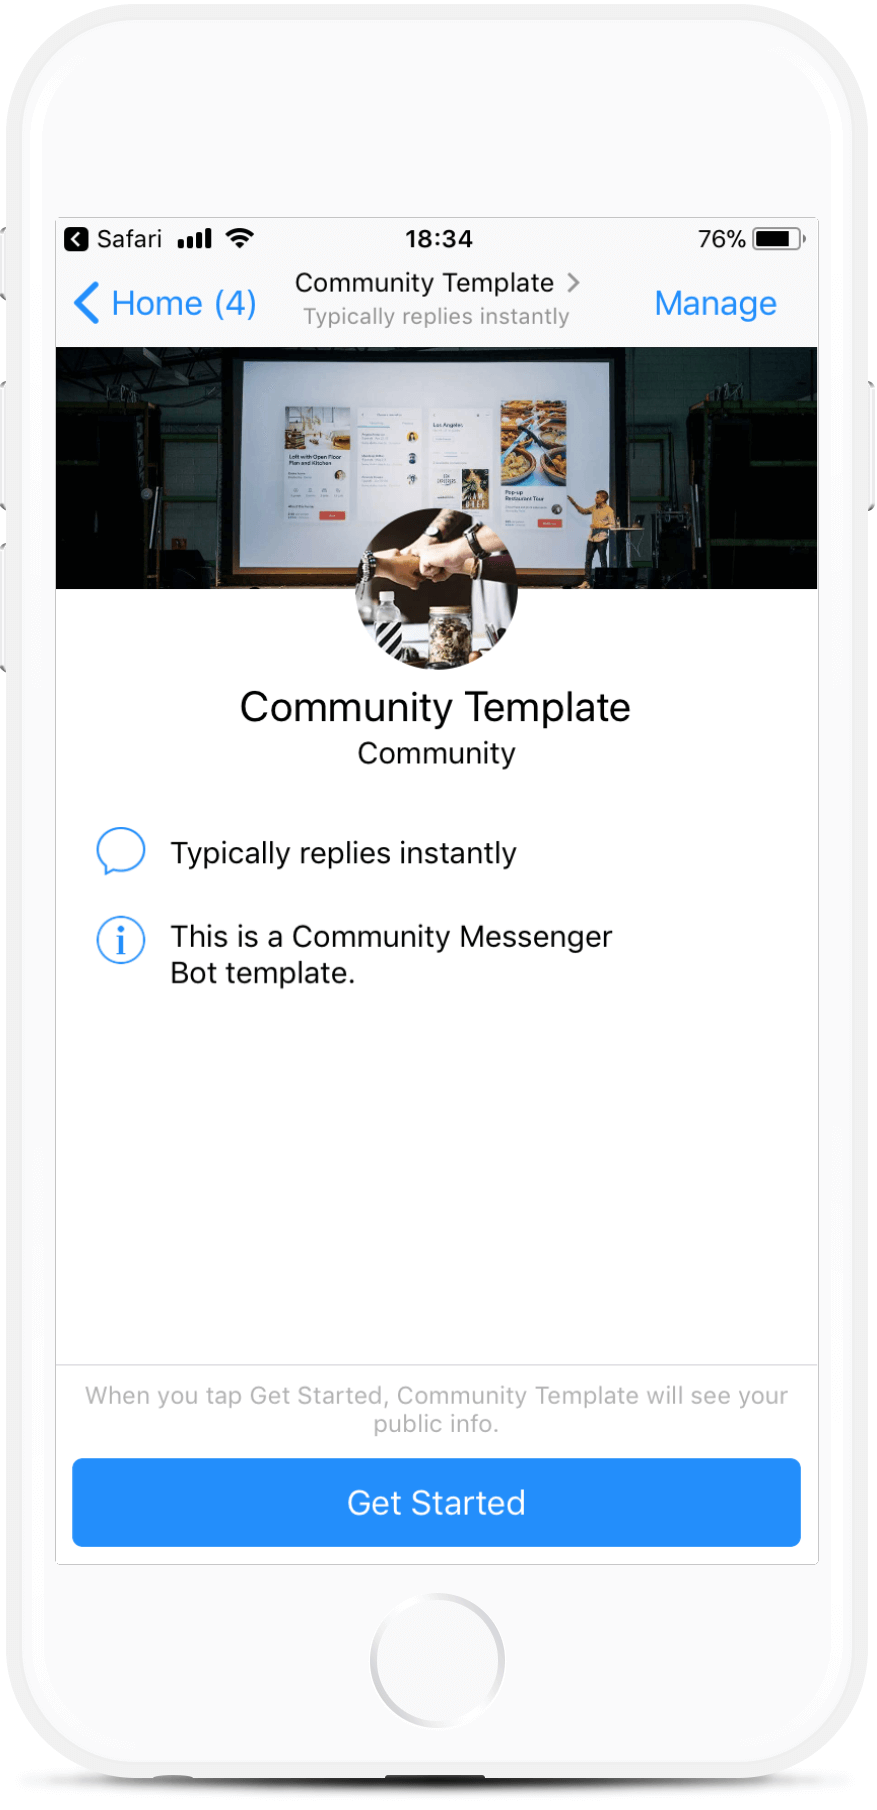 Community Messenger Bot